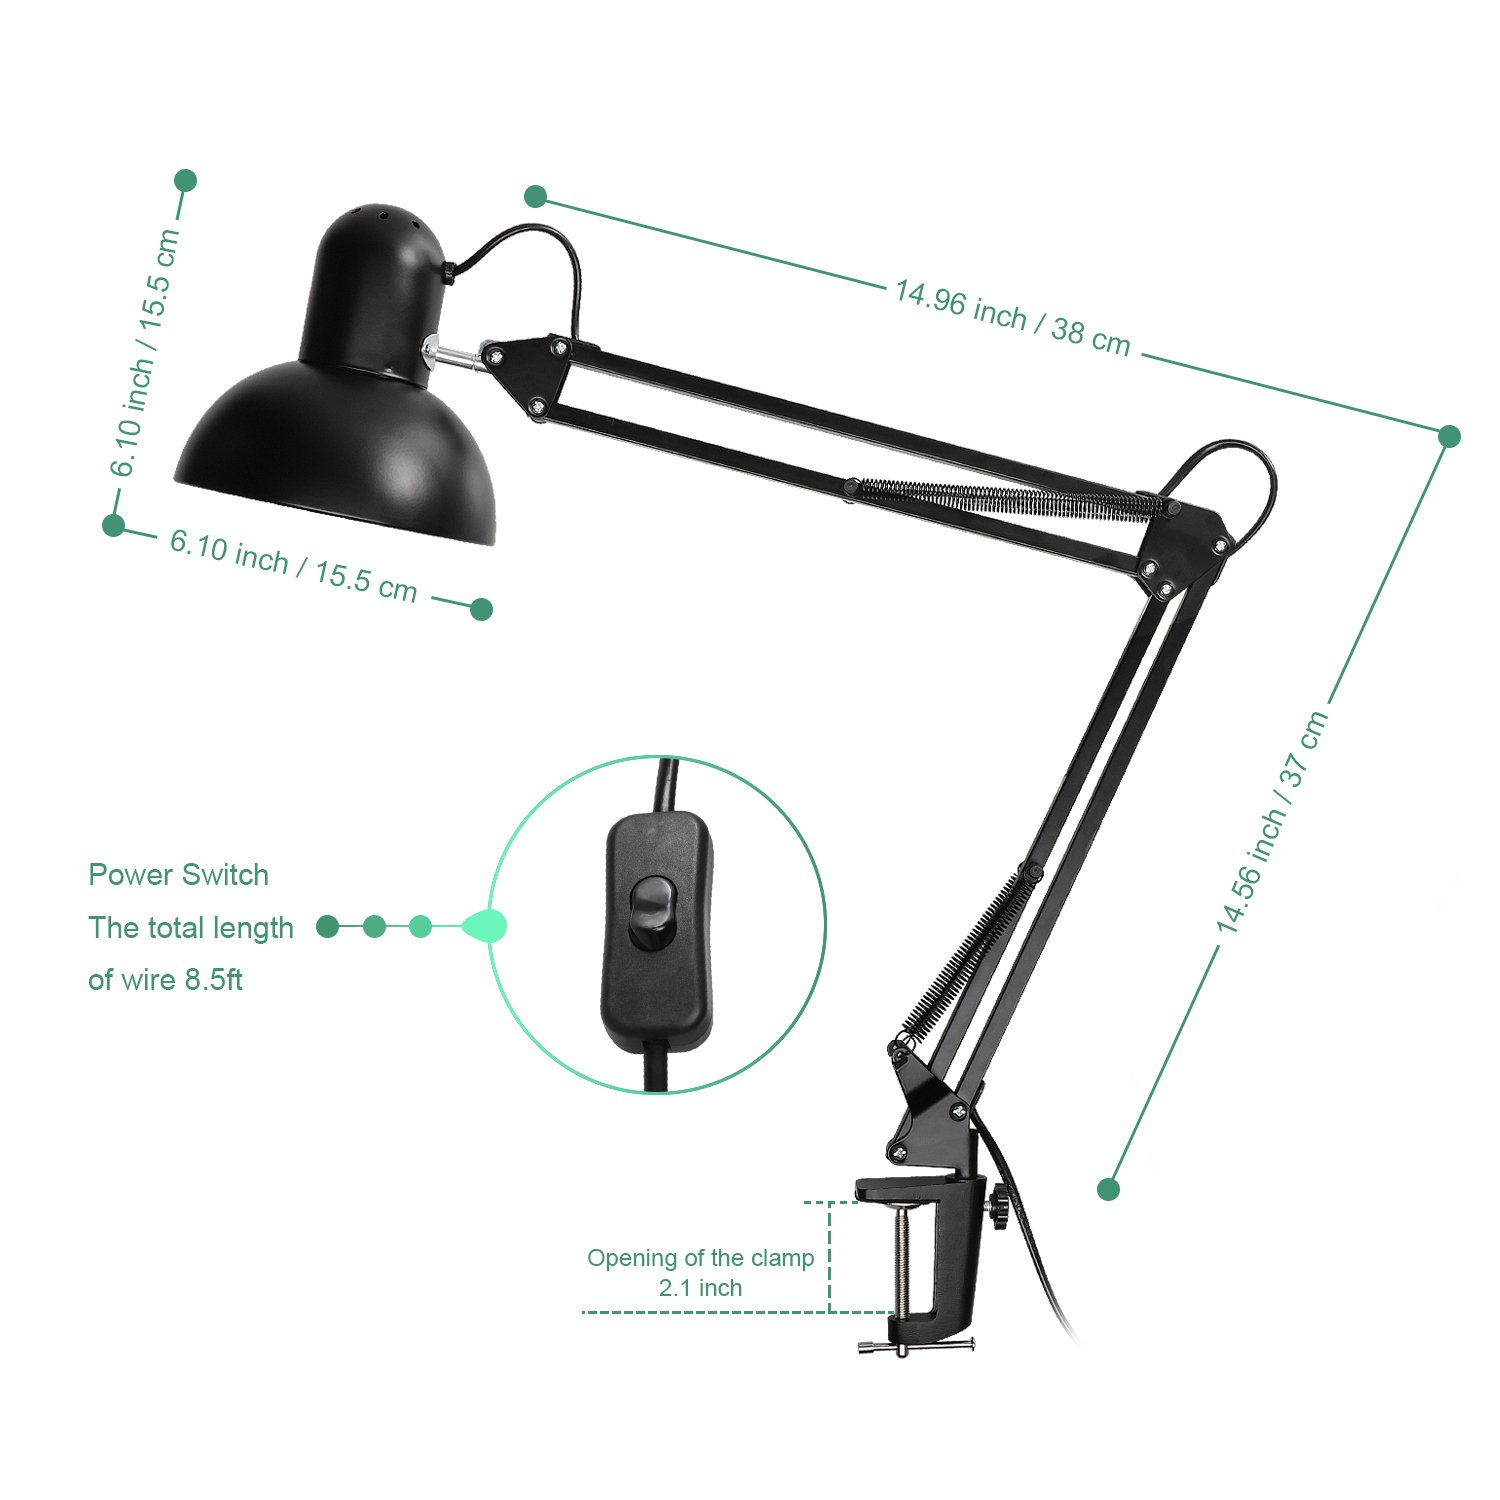 Carry360 Swing Arm Desk Lamp, Long Flexible Arm Desk Lamp Architect Table Lamp Clamp Mounted Swivel Light, Black Finish by Carry360 (Image #1)